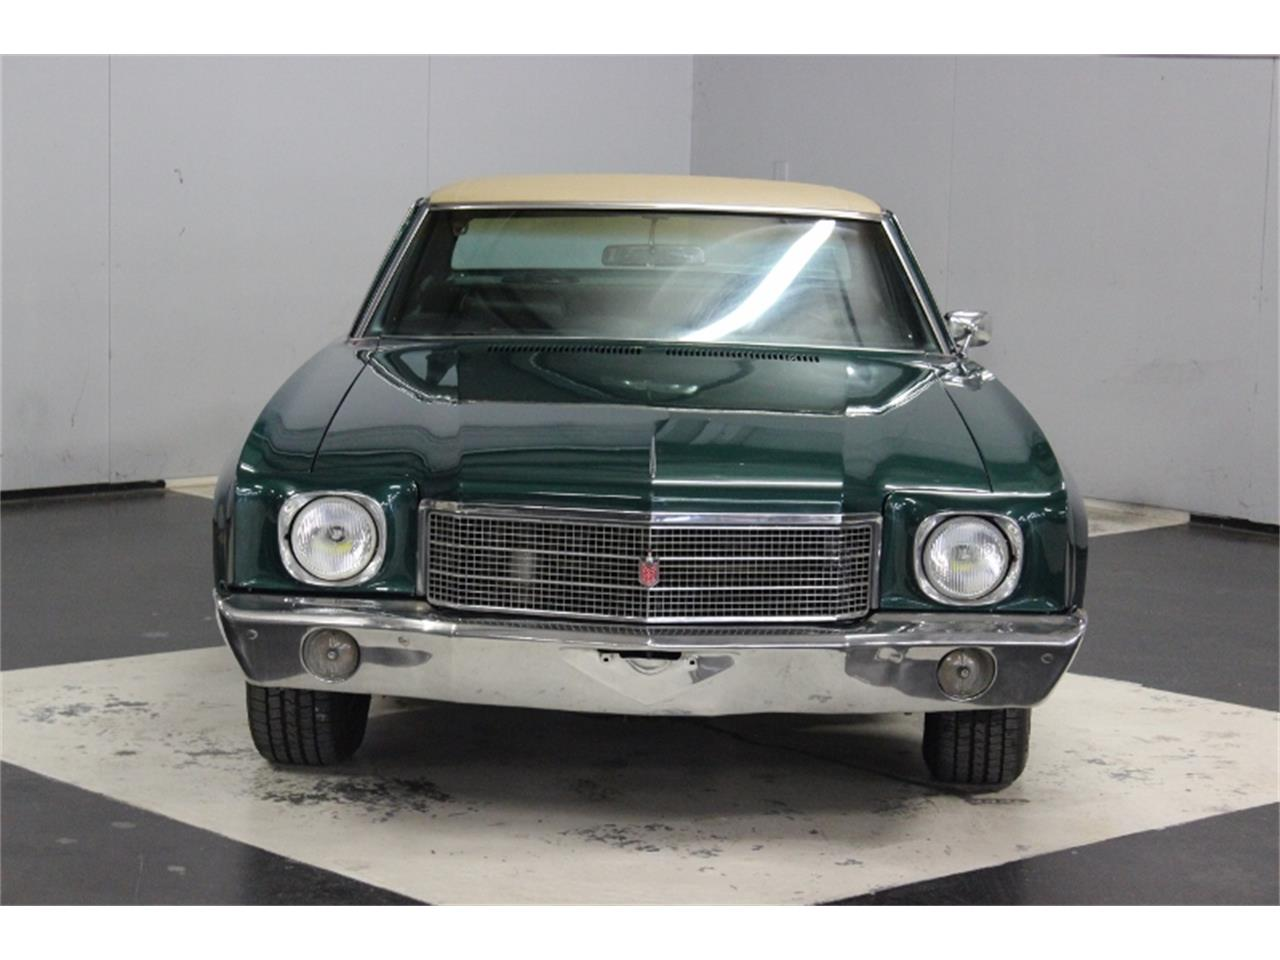 Large Picture of Classic 1970 Monte Carlo located in Lillington North Carolina - $15,000.00 - PPCA